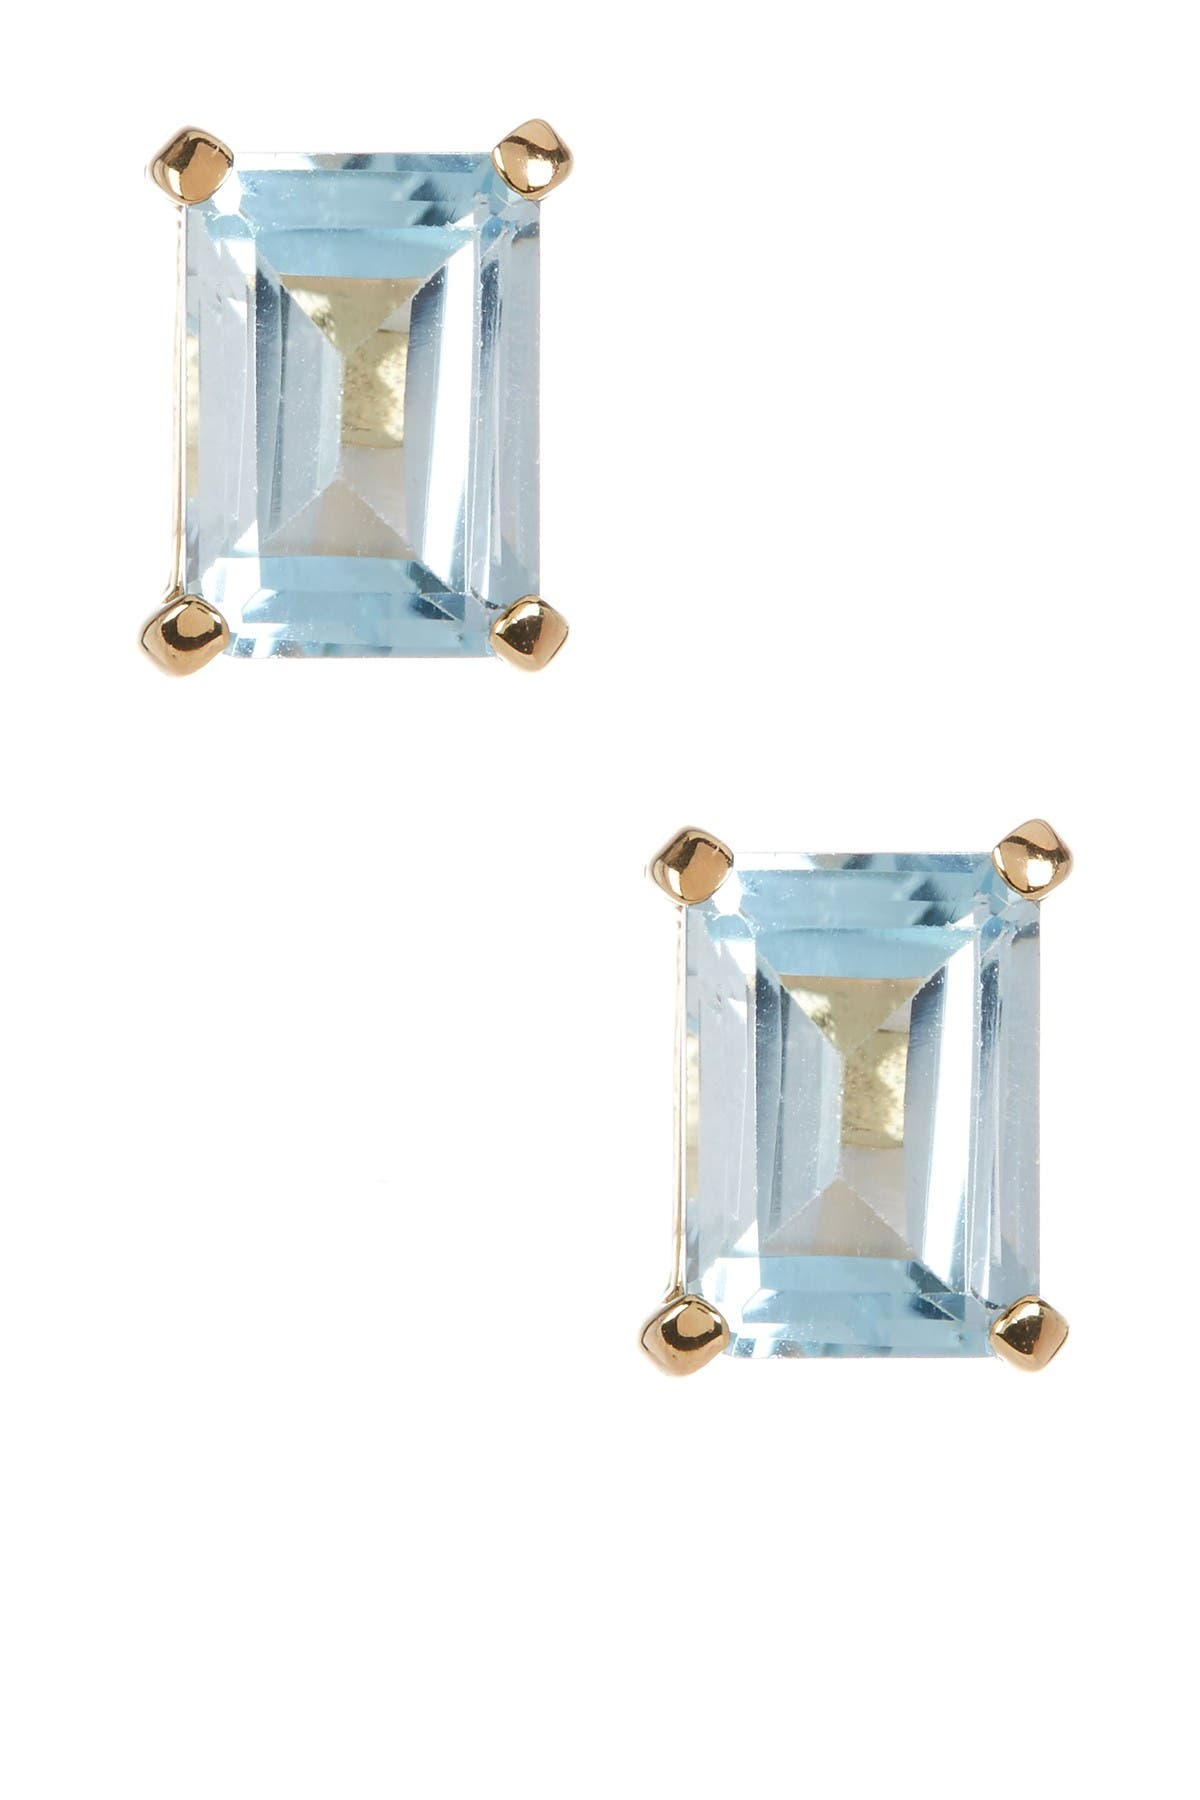 Image of Savvy Cie 18K Yellow Gold Vermeil Emerald-Cut Sky Blue Topaz Stud Earrings